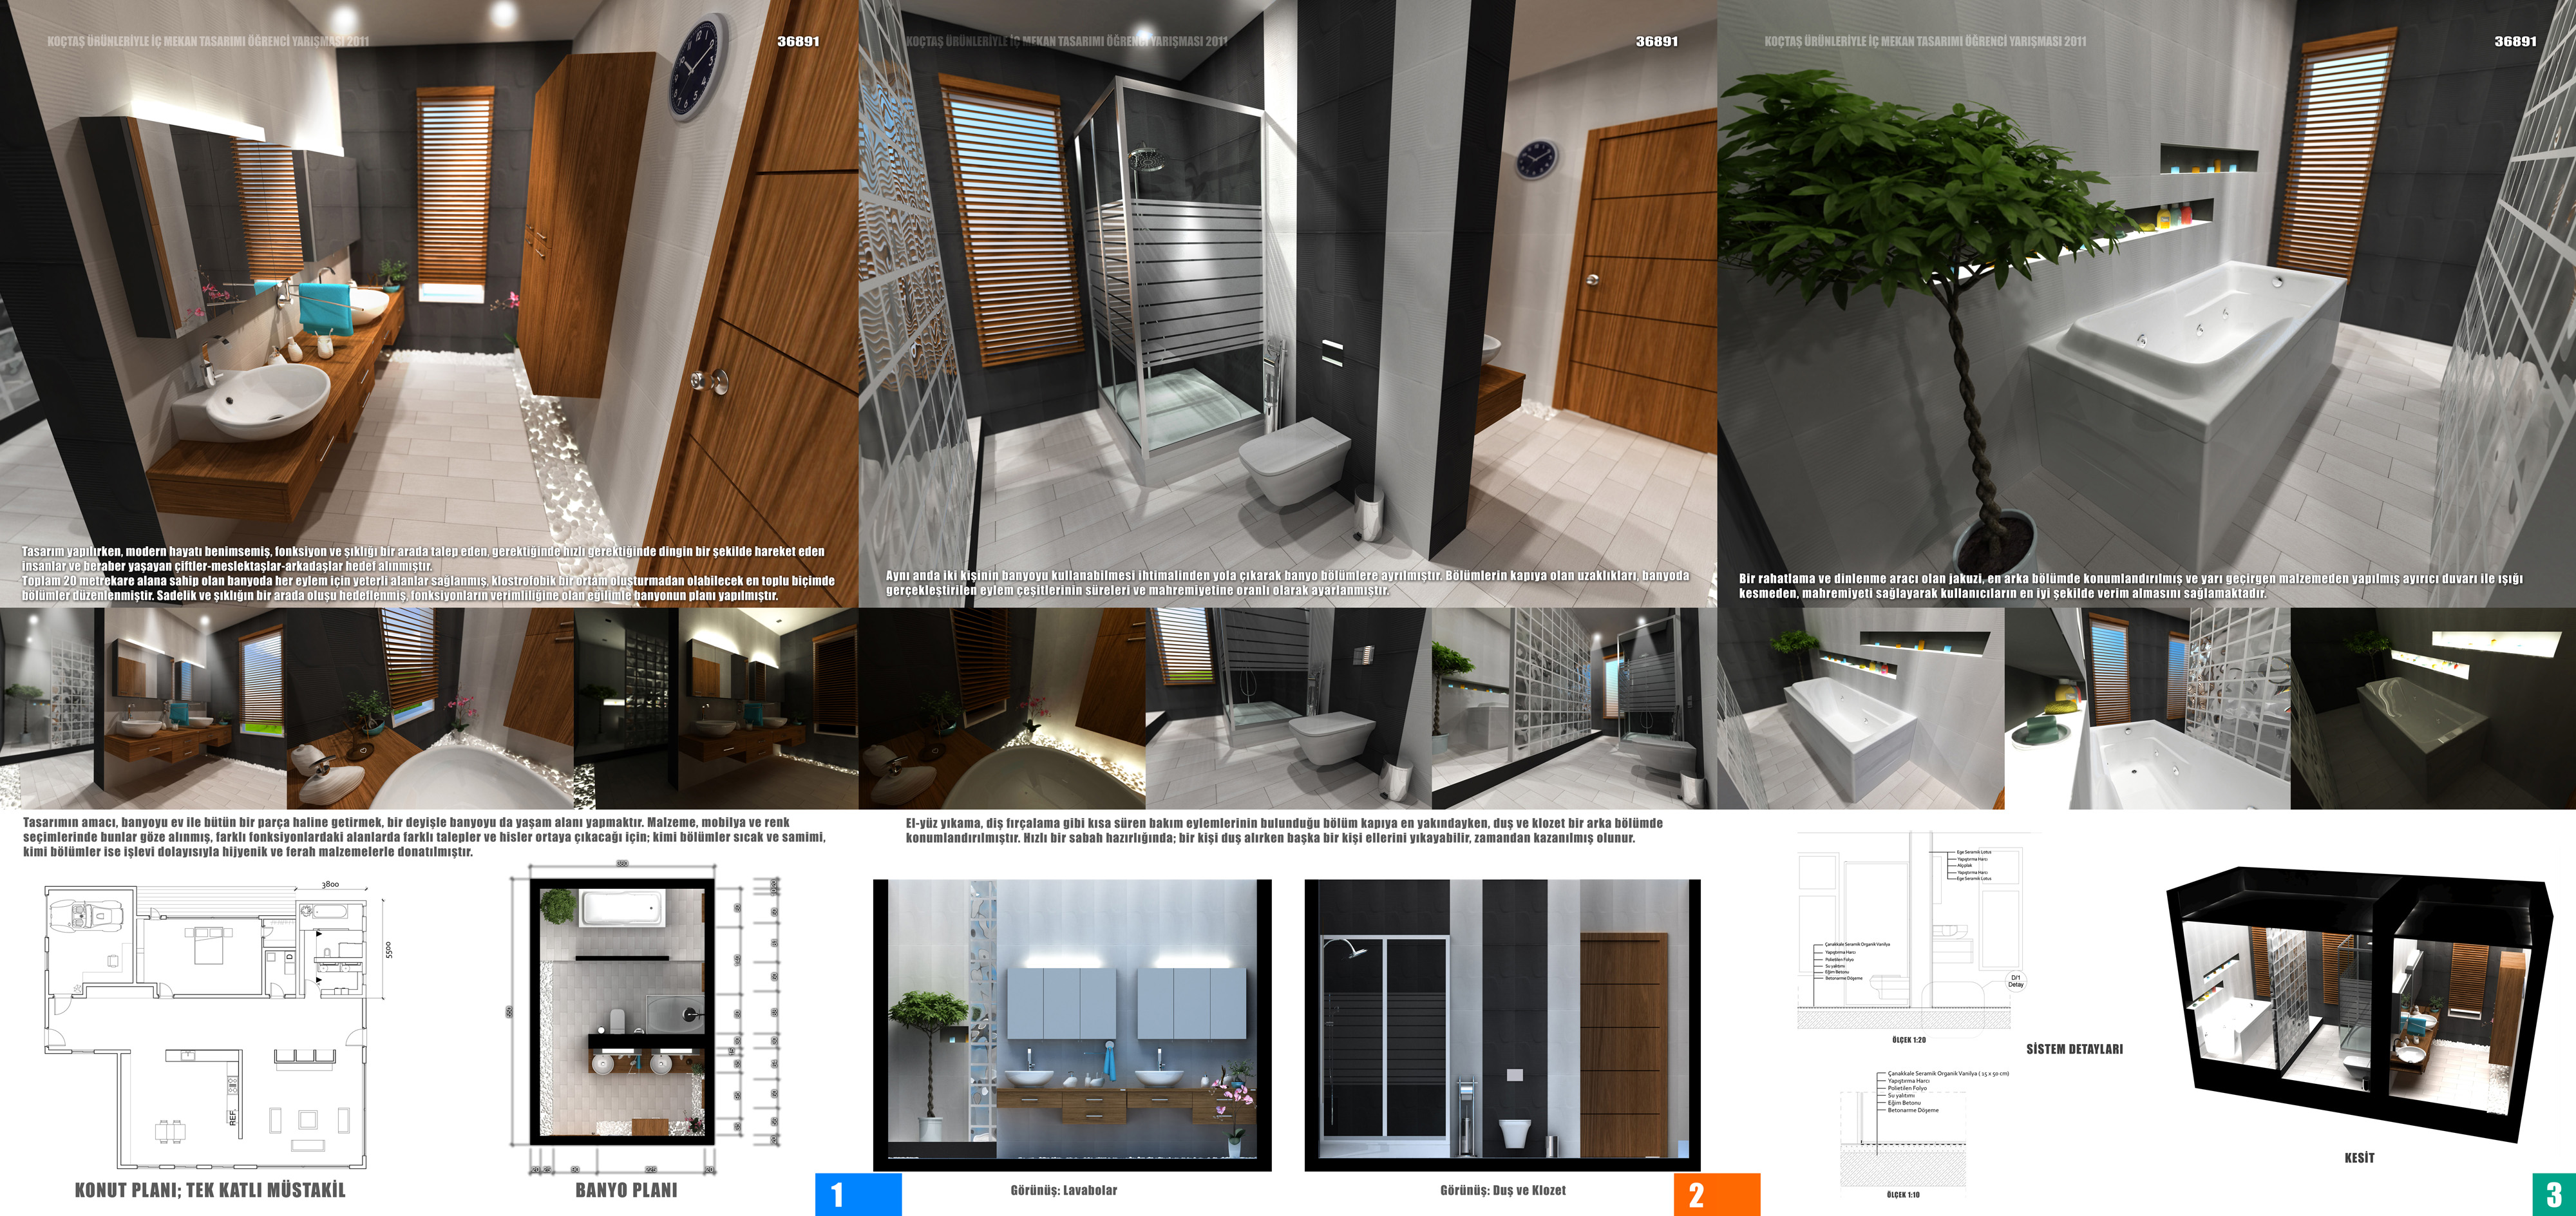 Bathroom Design Competition Sheets By Omerty Bathroom Design Competition  Sheets By Omerty